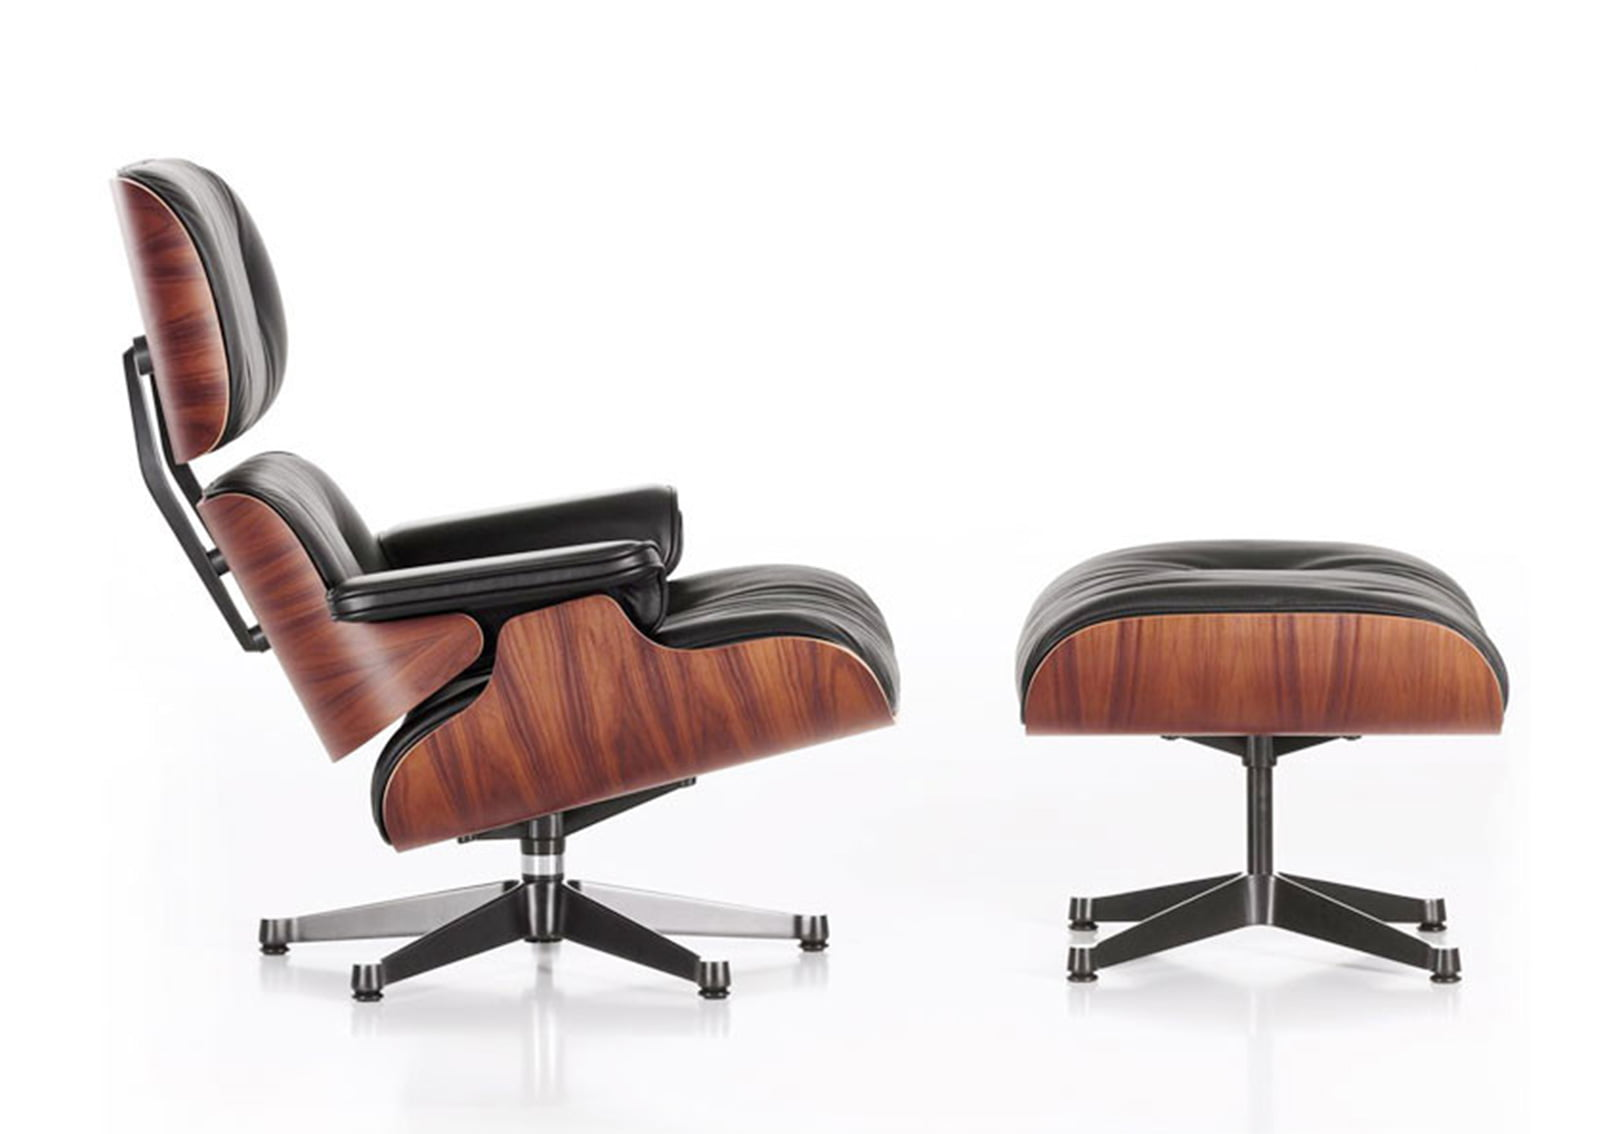 Eames Lounge Stoel Replica.Eames Chairs Eames Lounge Chair With Ottoman Furnishplus